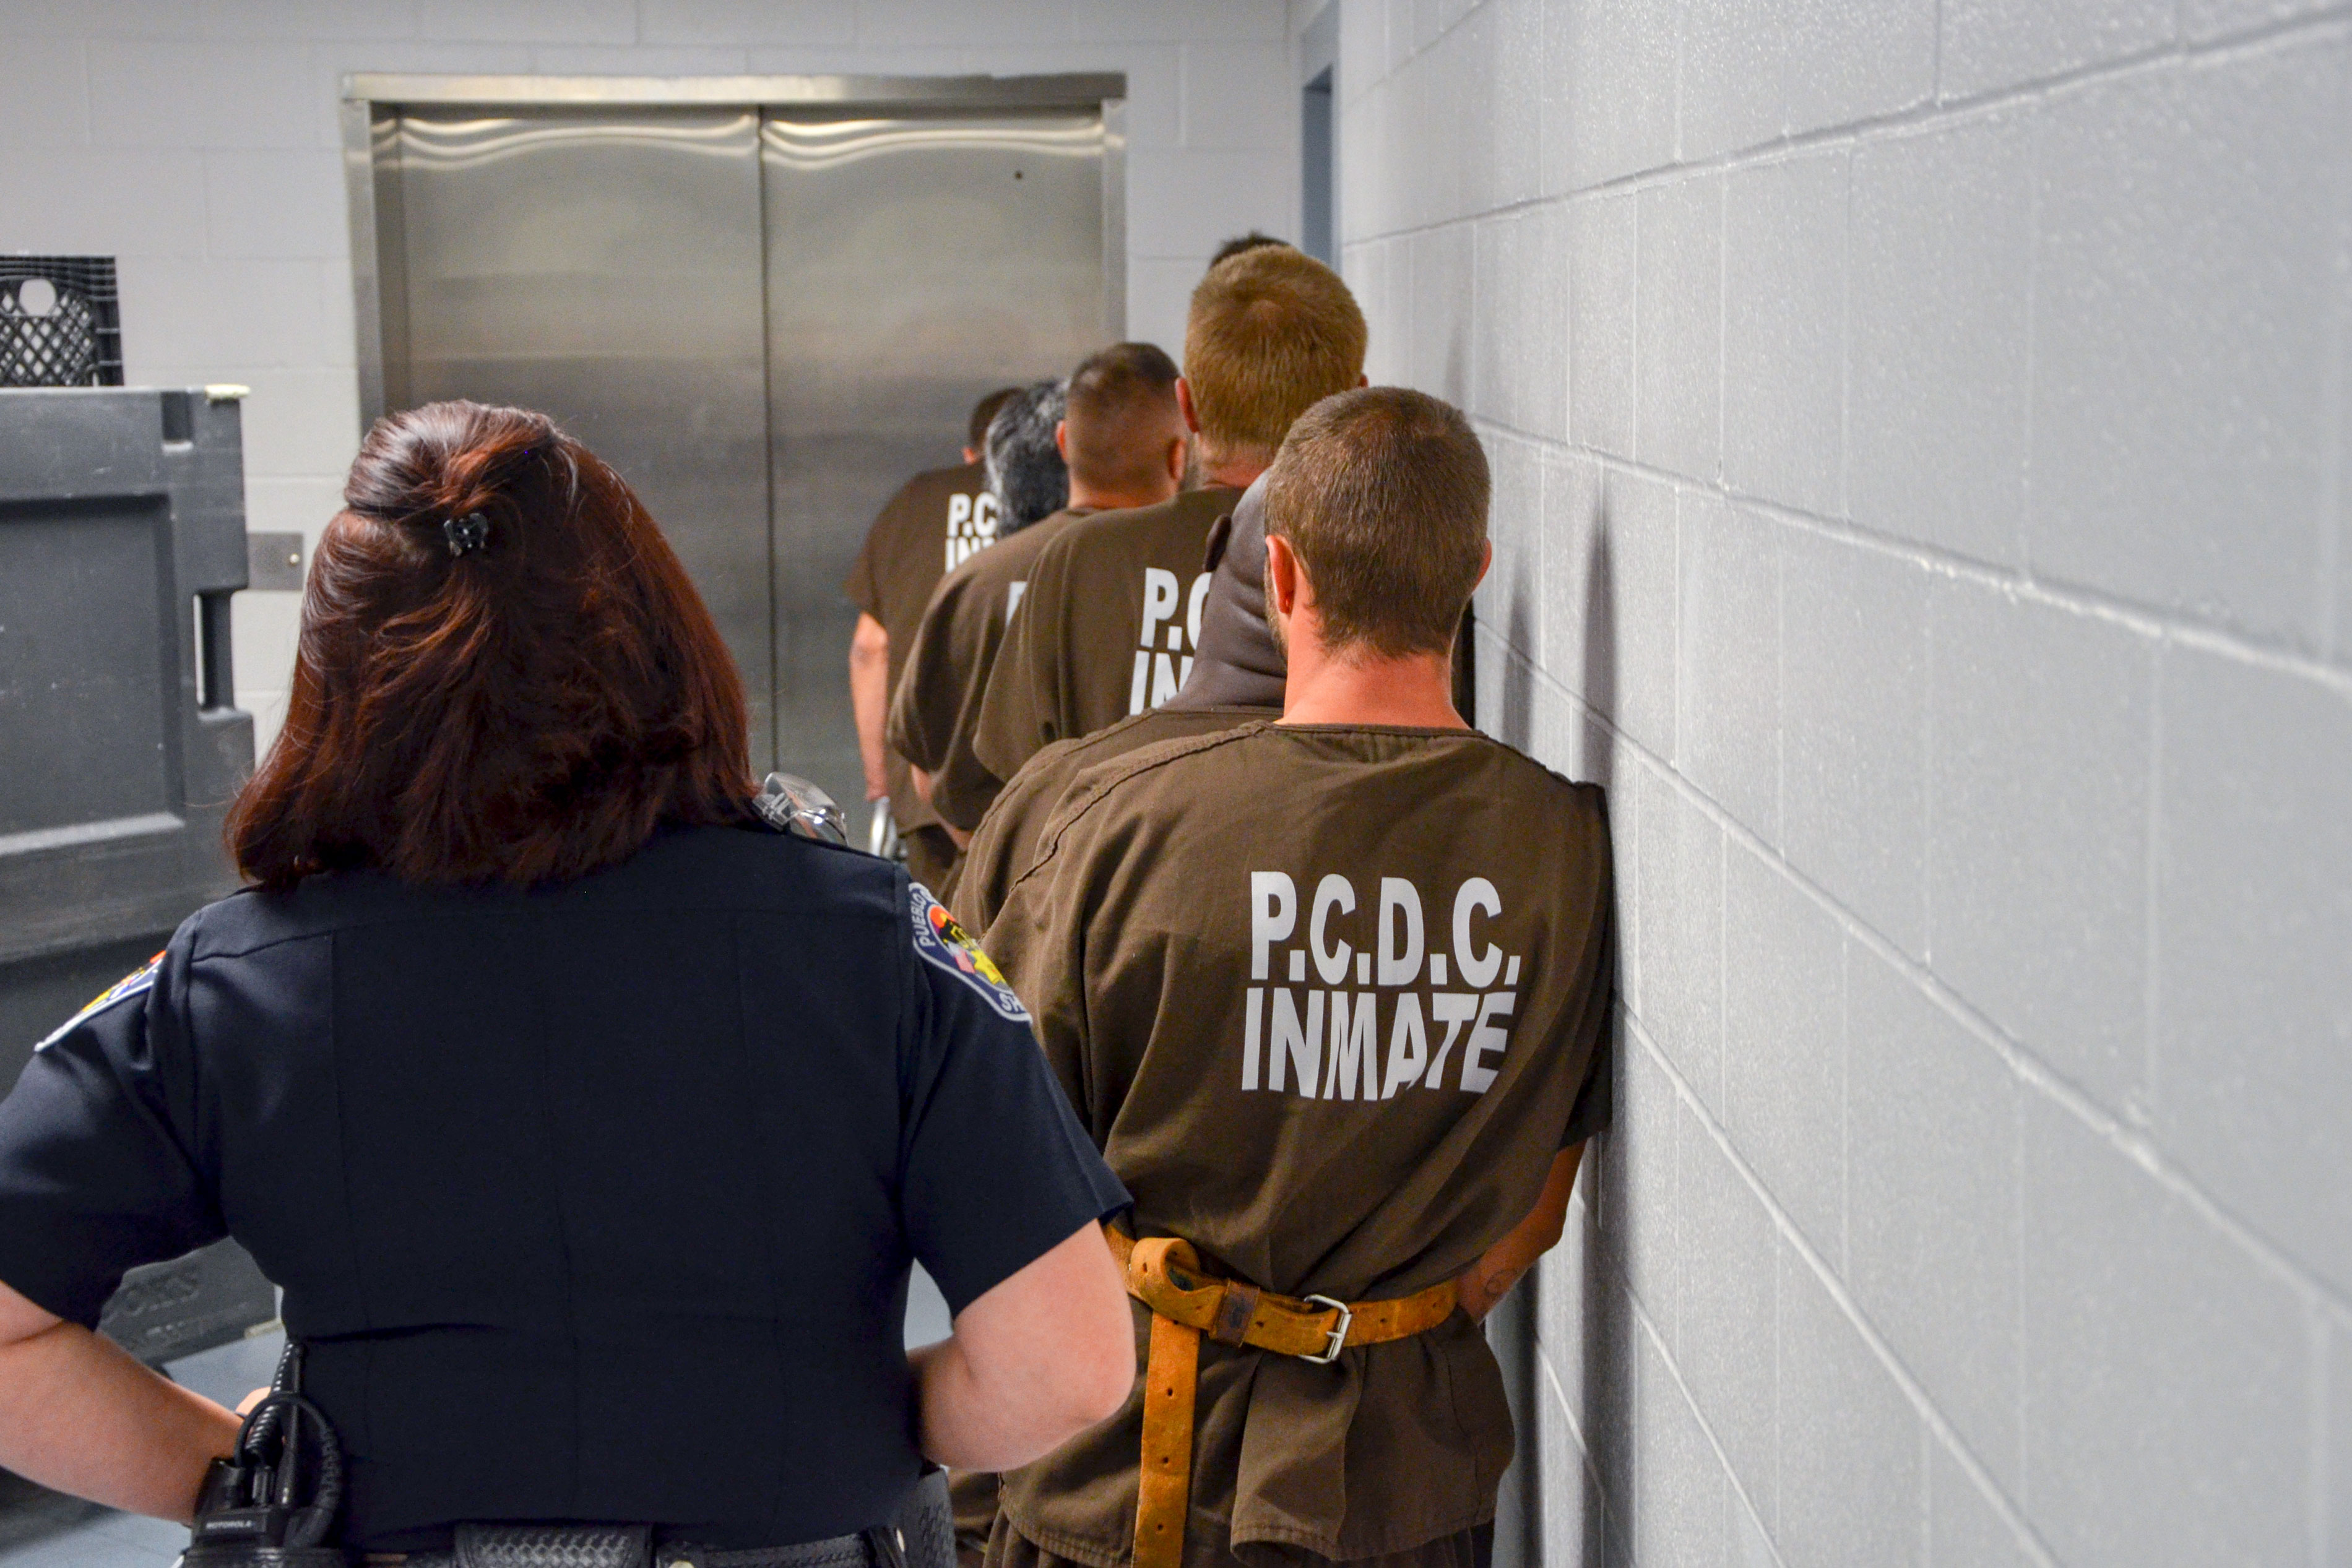 <p>Inmates headed for court inside the Pueblo County Jail.</p>